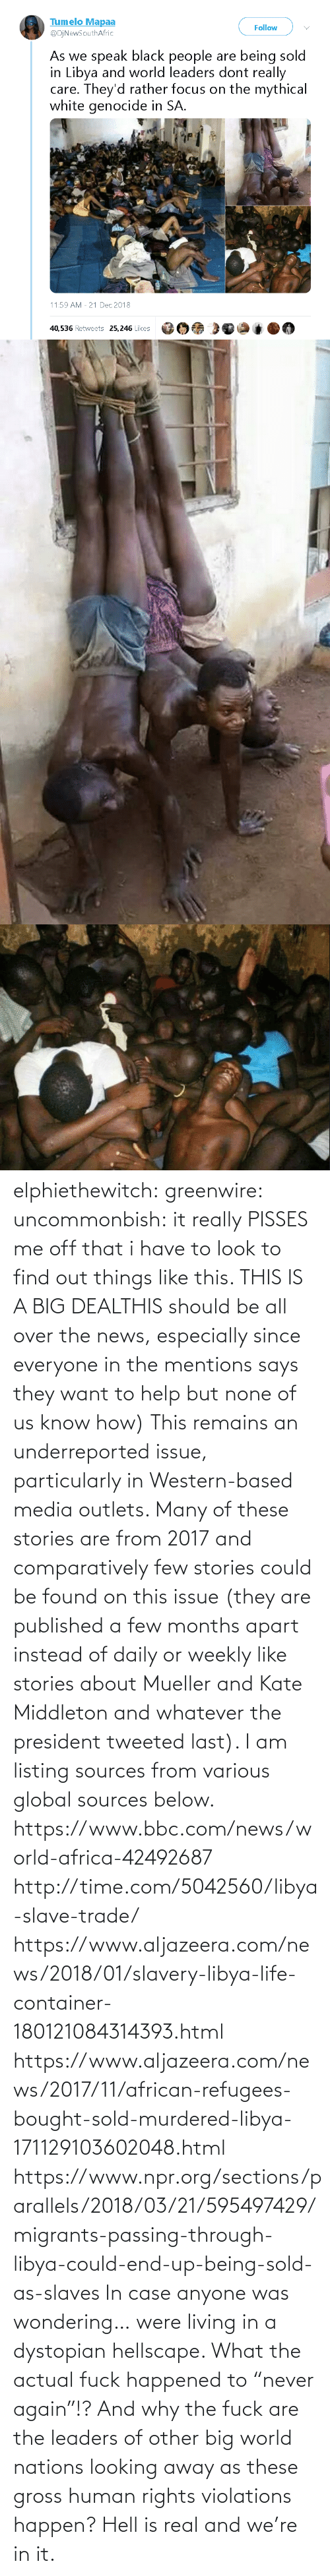 "wondering: elphiethewitch: greenwire:  uncommonbish:  it really PISSES me off that i have to look to find out things like this. THIS IS A BIG DEALTHIS should be all over the news, especially since everyone in the mentions says they want to help but none of us know how)  This remains an underreported issue, particularly in Western-based media outlets. Many of these stories are from 2017 and comparatively few stories could be found on this issue (they are published a few months apart instead of daily or weekly like stories about Mueller and Kate Middleton and whatever the president tweeted last). I am listing sources from various global sources below.  https://www.bbc.com/news/world-africa-42492687 http://time.com/5042560/libya-slave-trade/ https://www.aljazeera.com/news/2018/01/slavery-libya-life-container-180121084314393.html https://www.aljazeera.com/news/2017/11/african-refugees-bought-sold-murdered-libya-171129103602048.html https://www.npr.org/sections/parallels/2018/03/21/595497429/migrants-passing-through-libya-could-end-up-being-sold-as-slaves   In case anyone was wondering… were living in a dystopian hellscape.  What the actual fuck happened to ""never again""!? And why the fuck are the leaders of other big world nations looking away as these gross human rights violations happen?  Hell is real and we're in it."